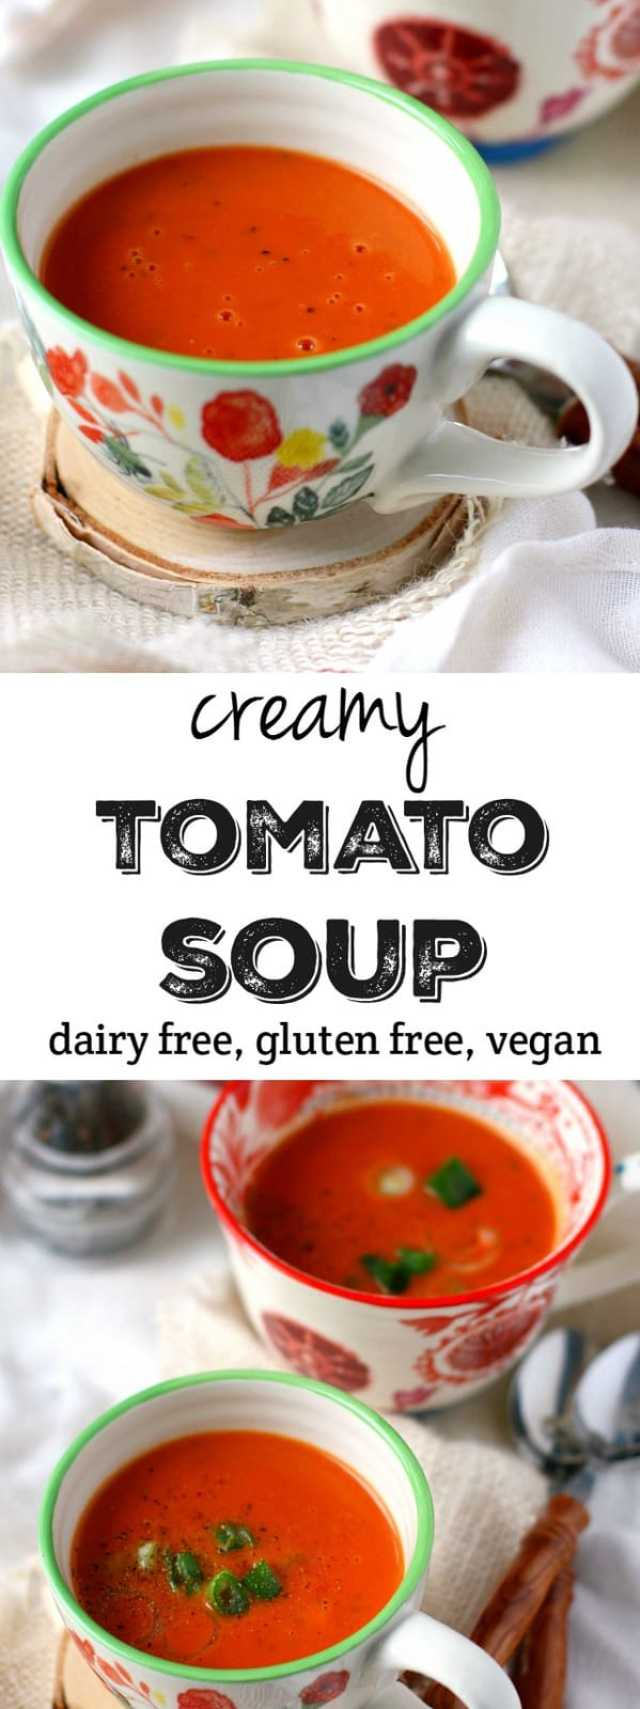 Creamy, comforting, delicious tomato soup made dairy free! This version is so much better than anything you can buy in the store! #dairyfree